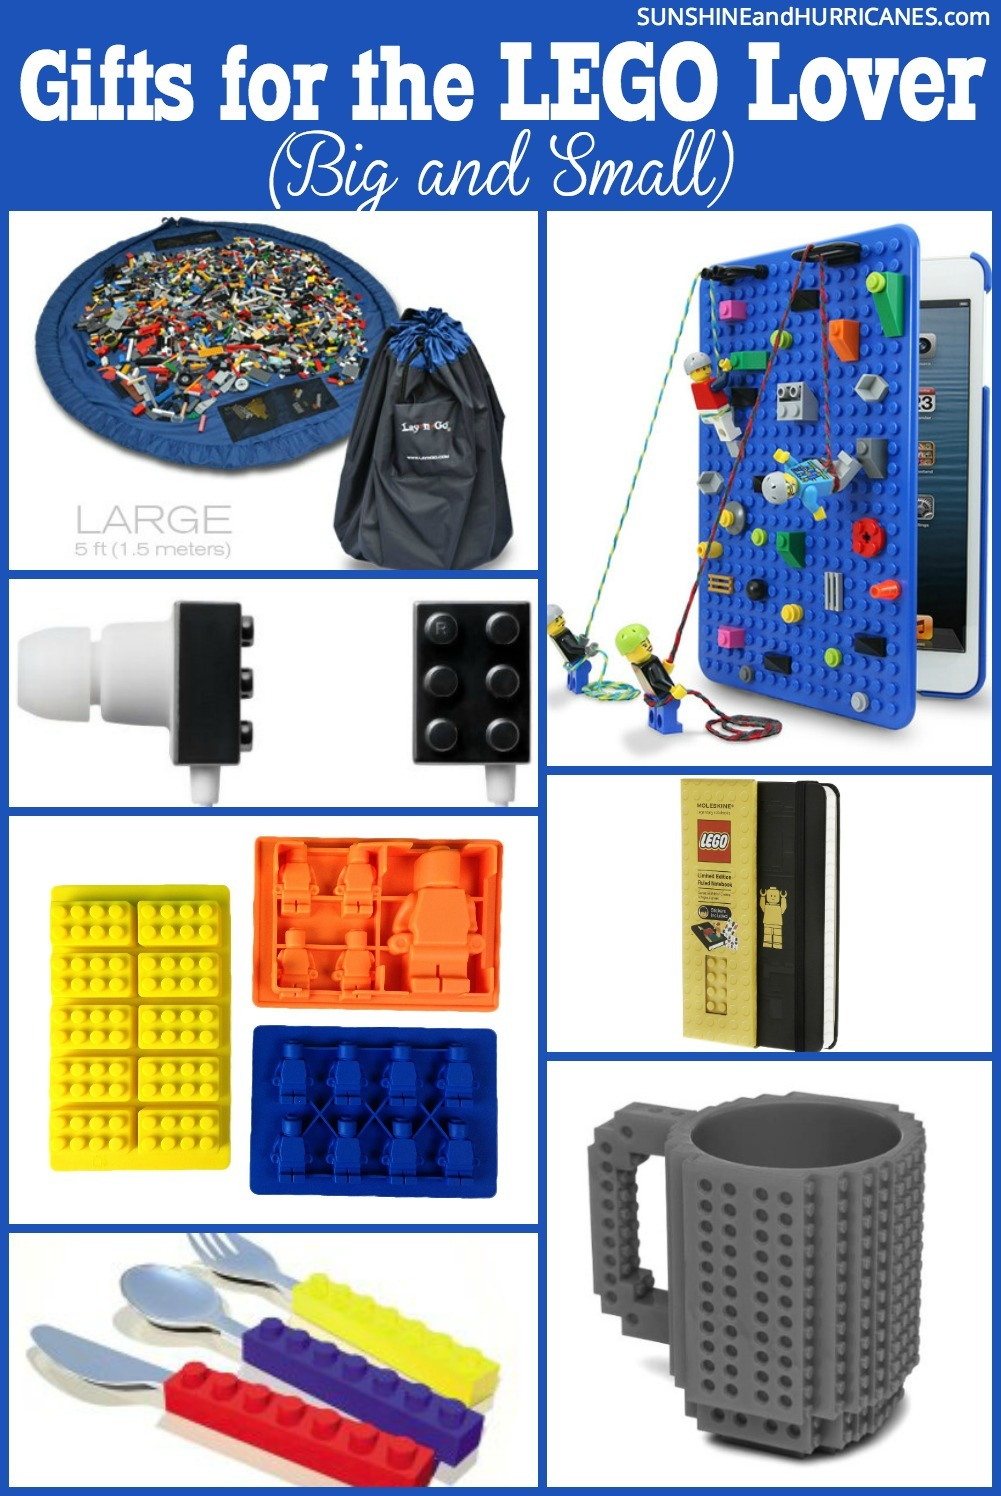 Looking for the perfect lego gifts for your lego lover. Whether they are little fans or all grown-up there are so many great options that you can buy or DIY. SunshineandHurricanes.com